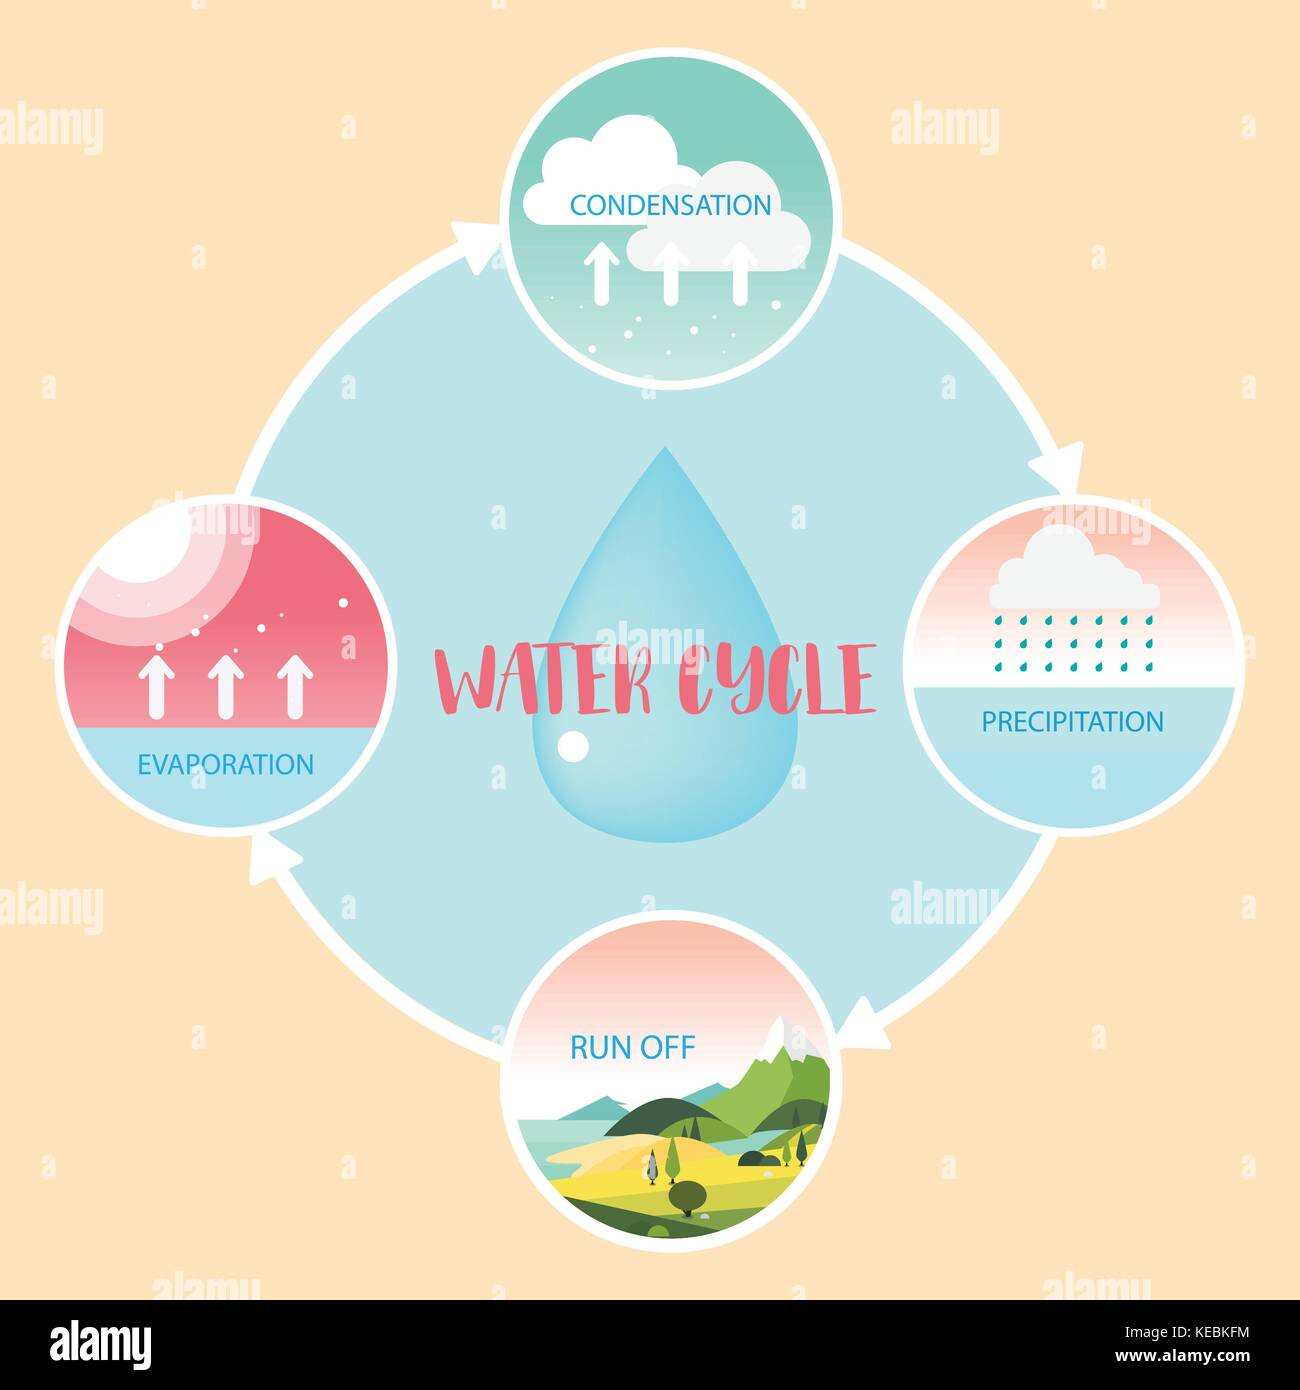 Water cycle information grapic illustration vecter design stock image